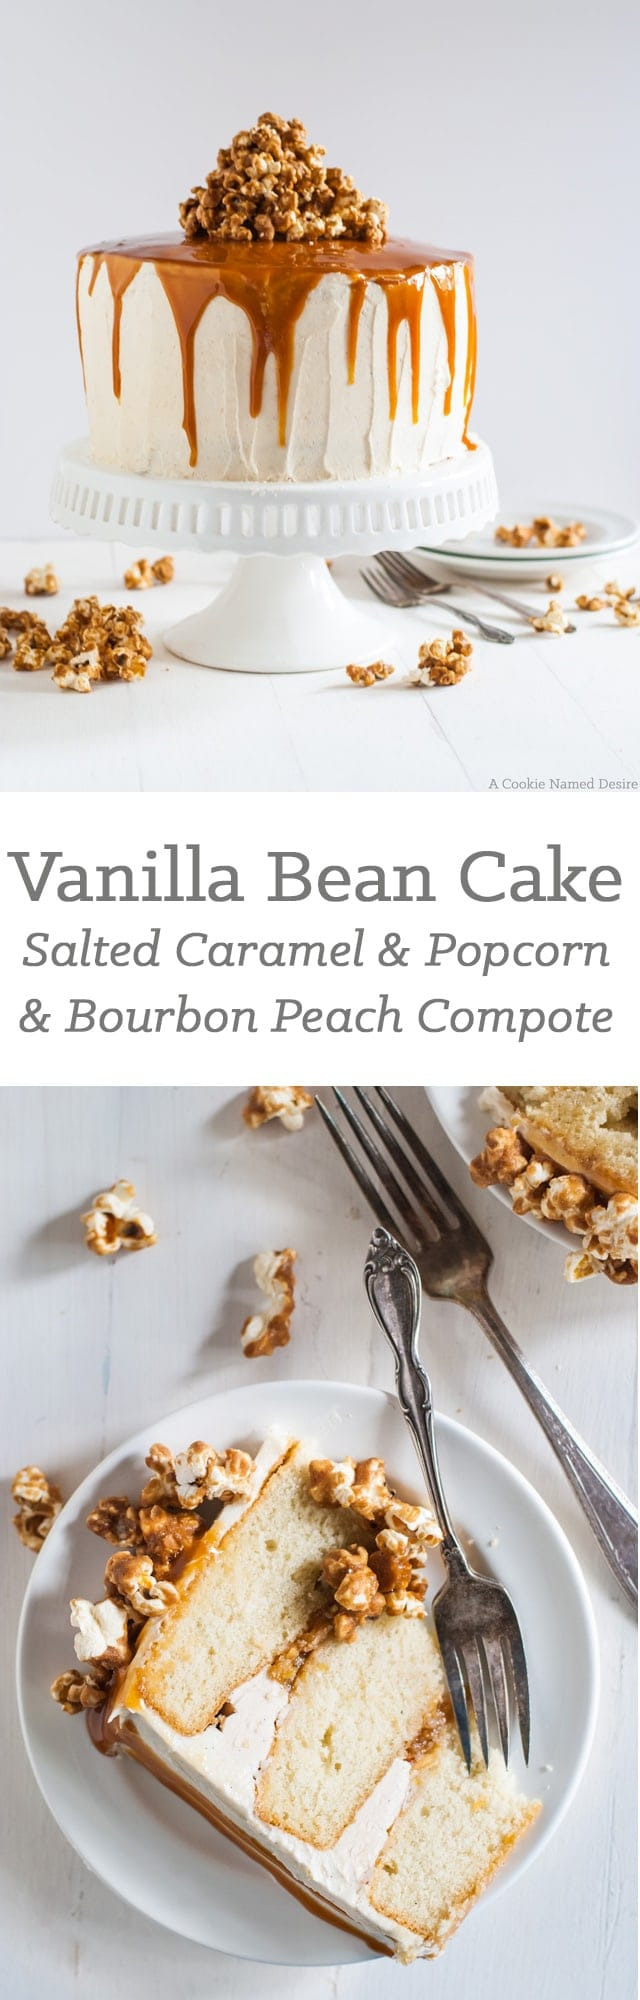 Vanilla bean birthday cake recipe with bourbon soaked peach compote and spicy caramelized onion. What a way to celebrate!